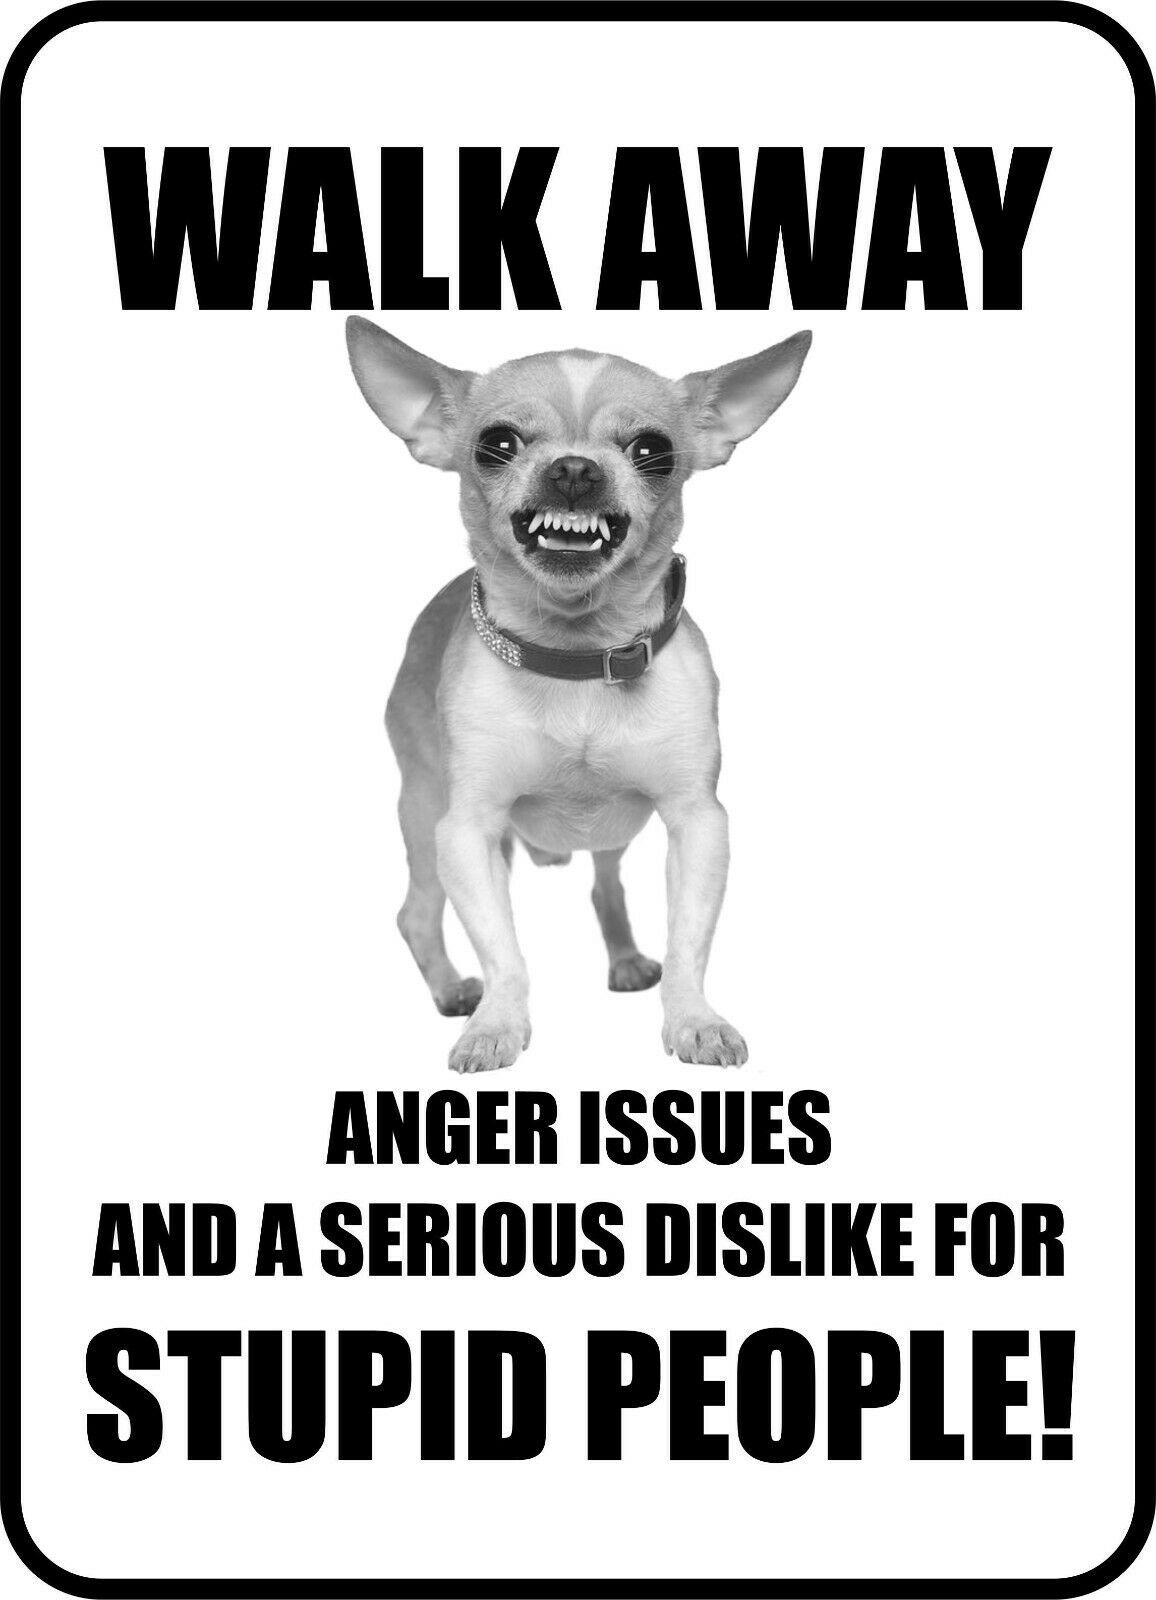 Primary image for #209 CHIHUAHUA WALK AWAY STUPID PEOPLE  DOG GATE FENCE SIGN